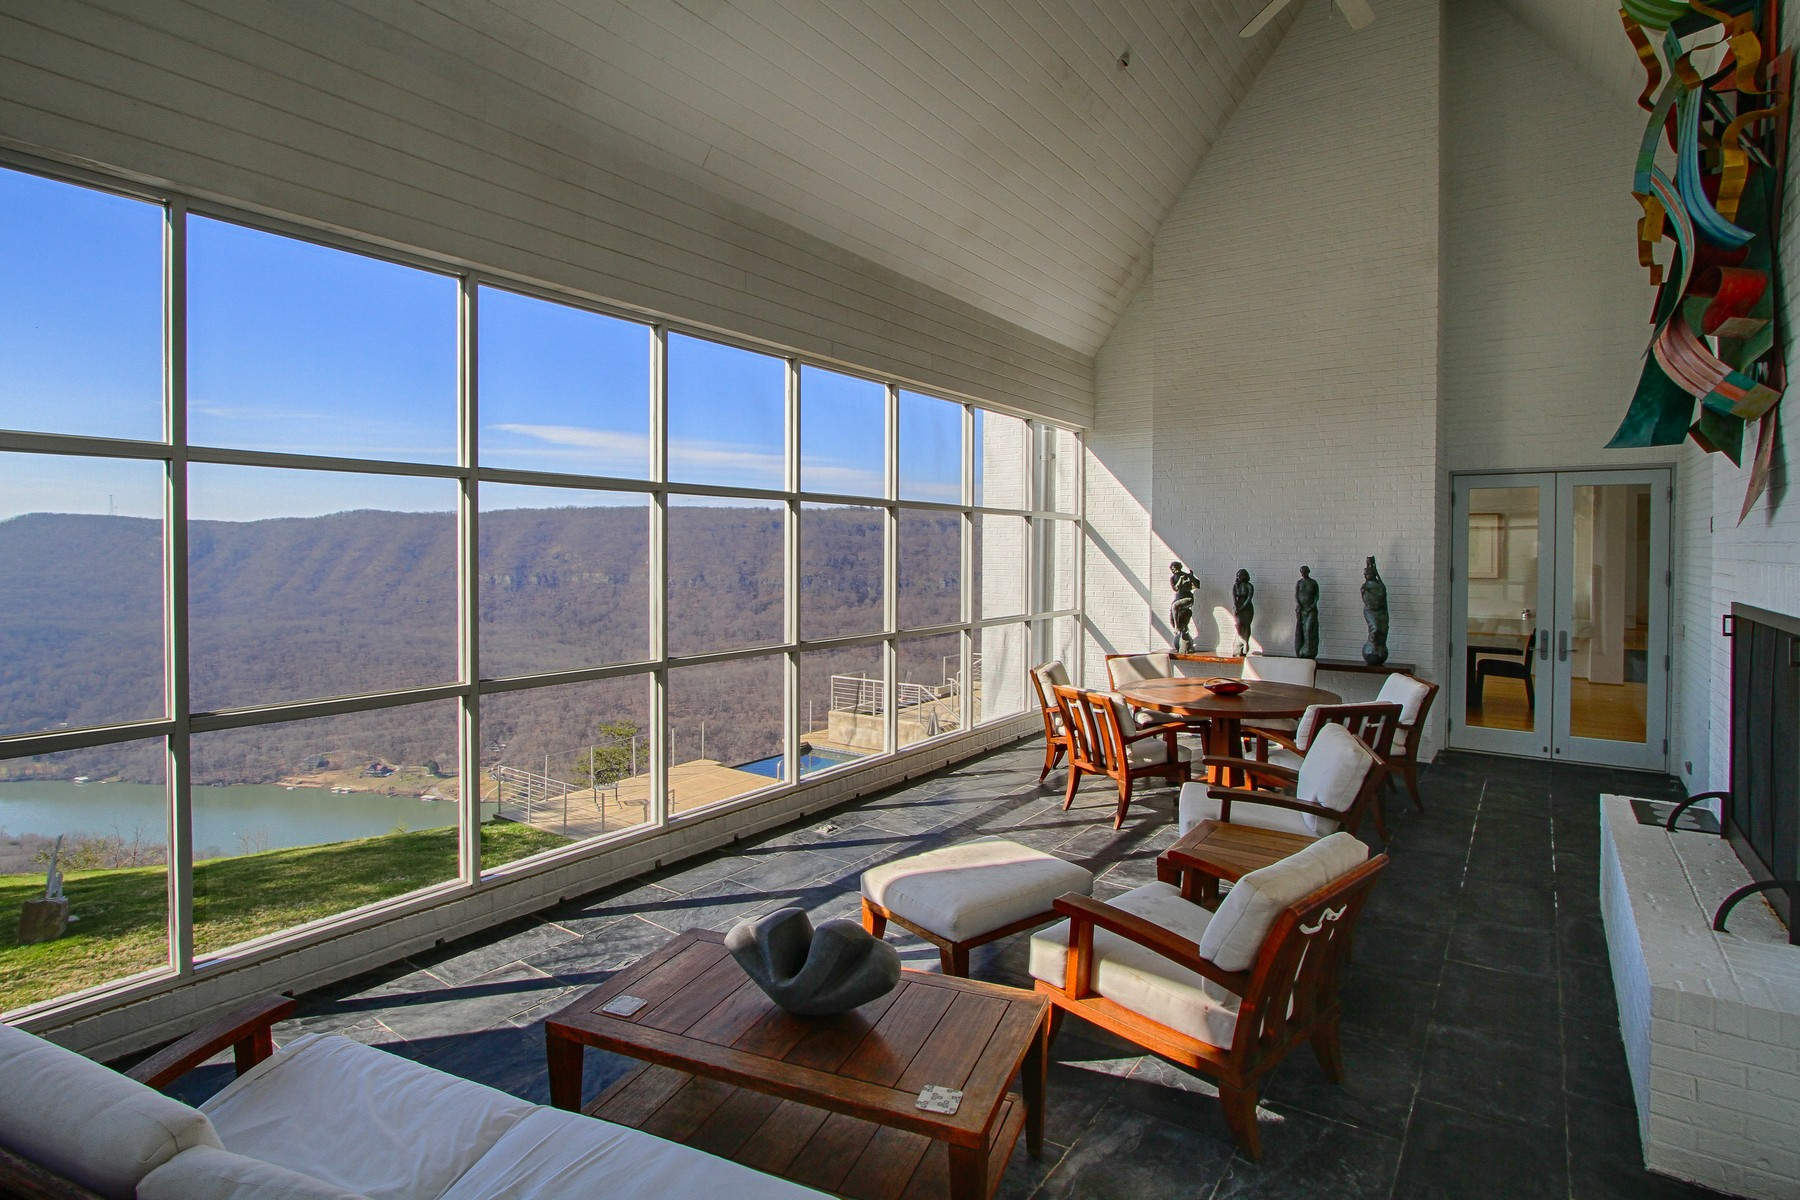 Additional photo for property listing at Sweeping Views of the Tennessee River Gorge 8 Close Family Road Signal Mountain, Tennessee 37377 United States